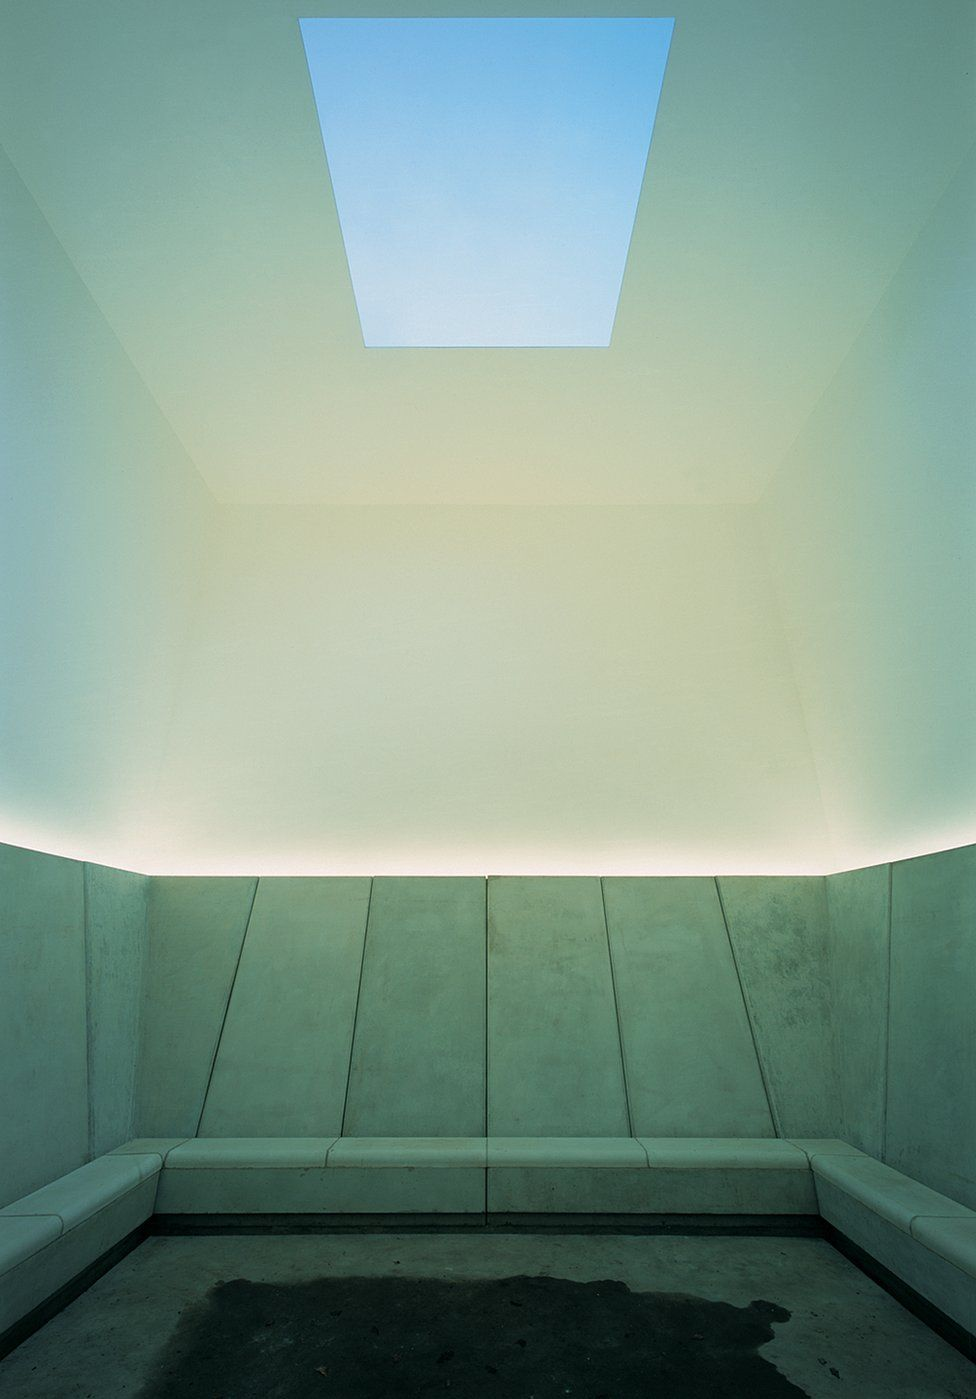 Deer Shelter Skyspace, 2006 by James Turrell